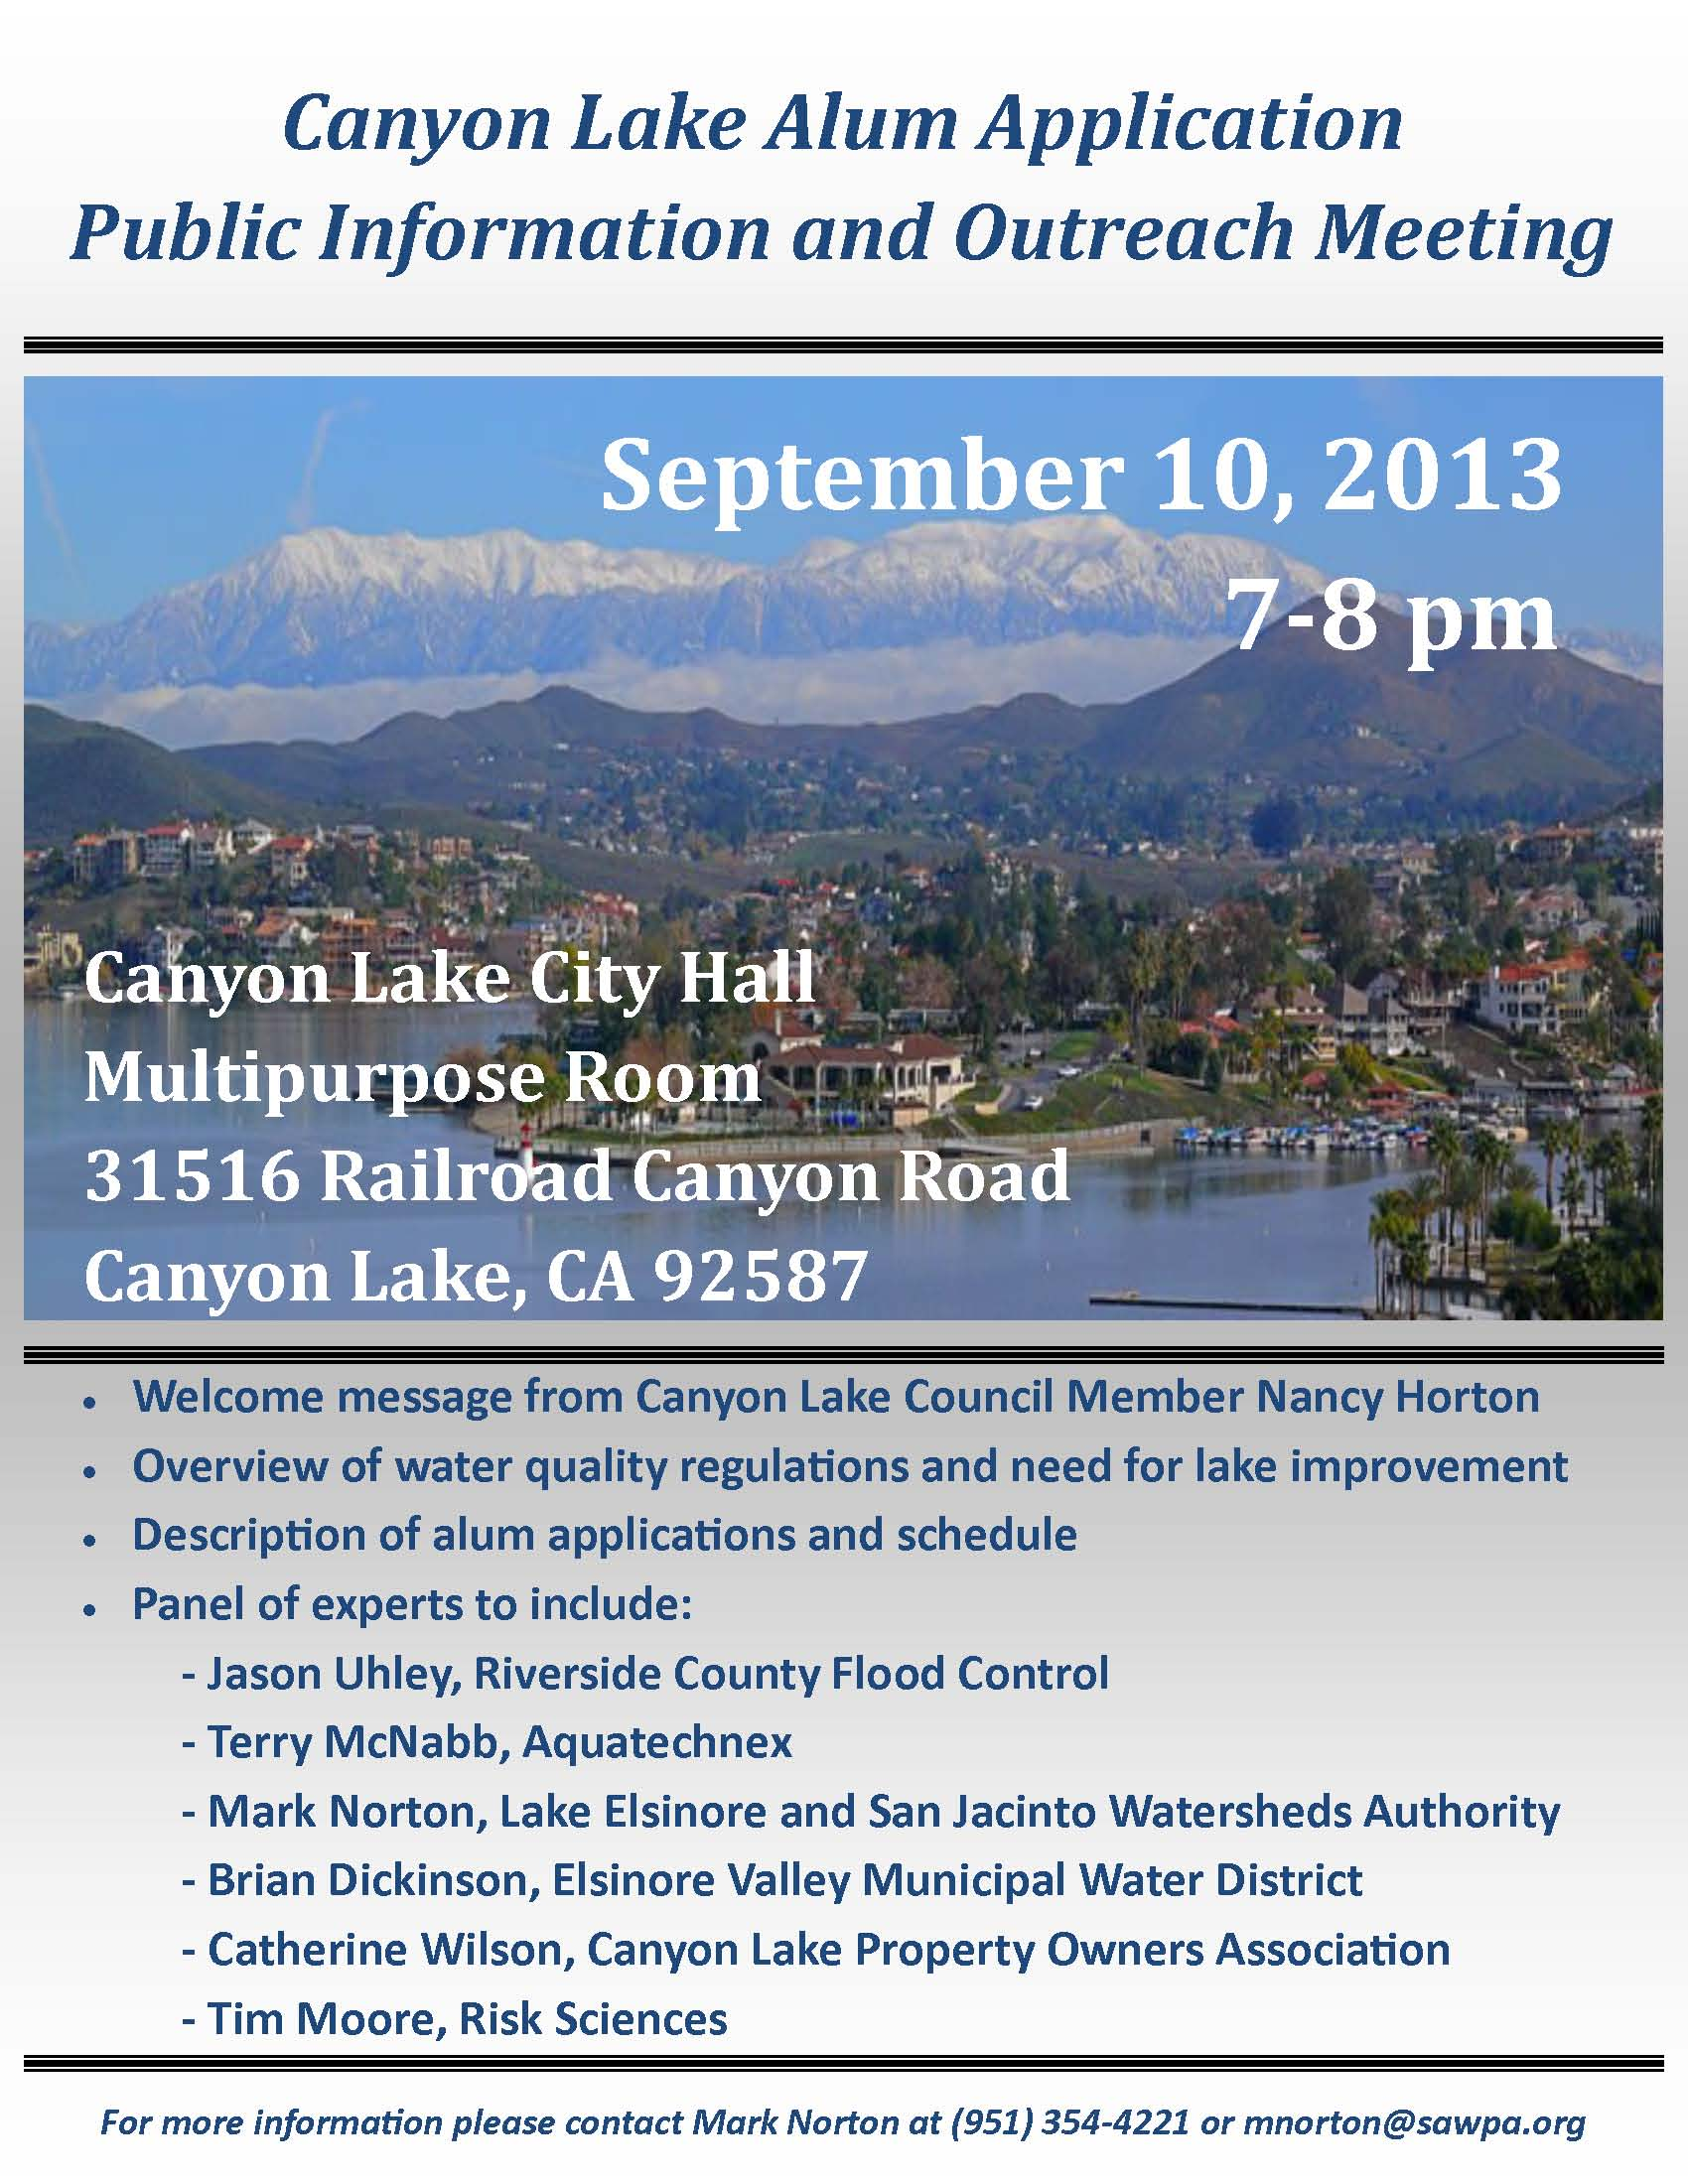 Canyon Lake Alum Application Community Meeting Flyer